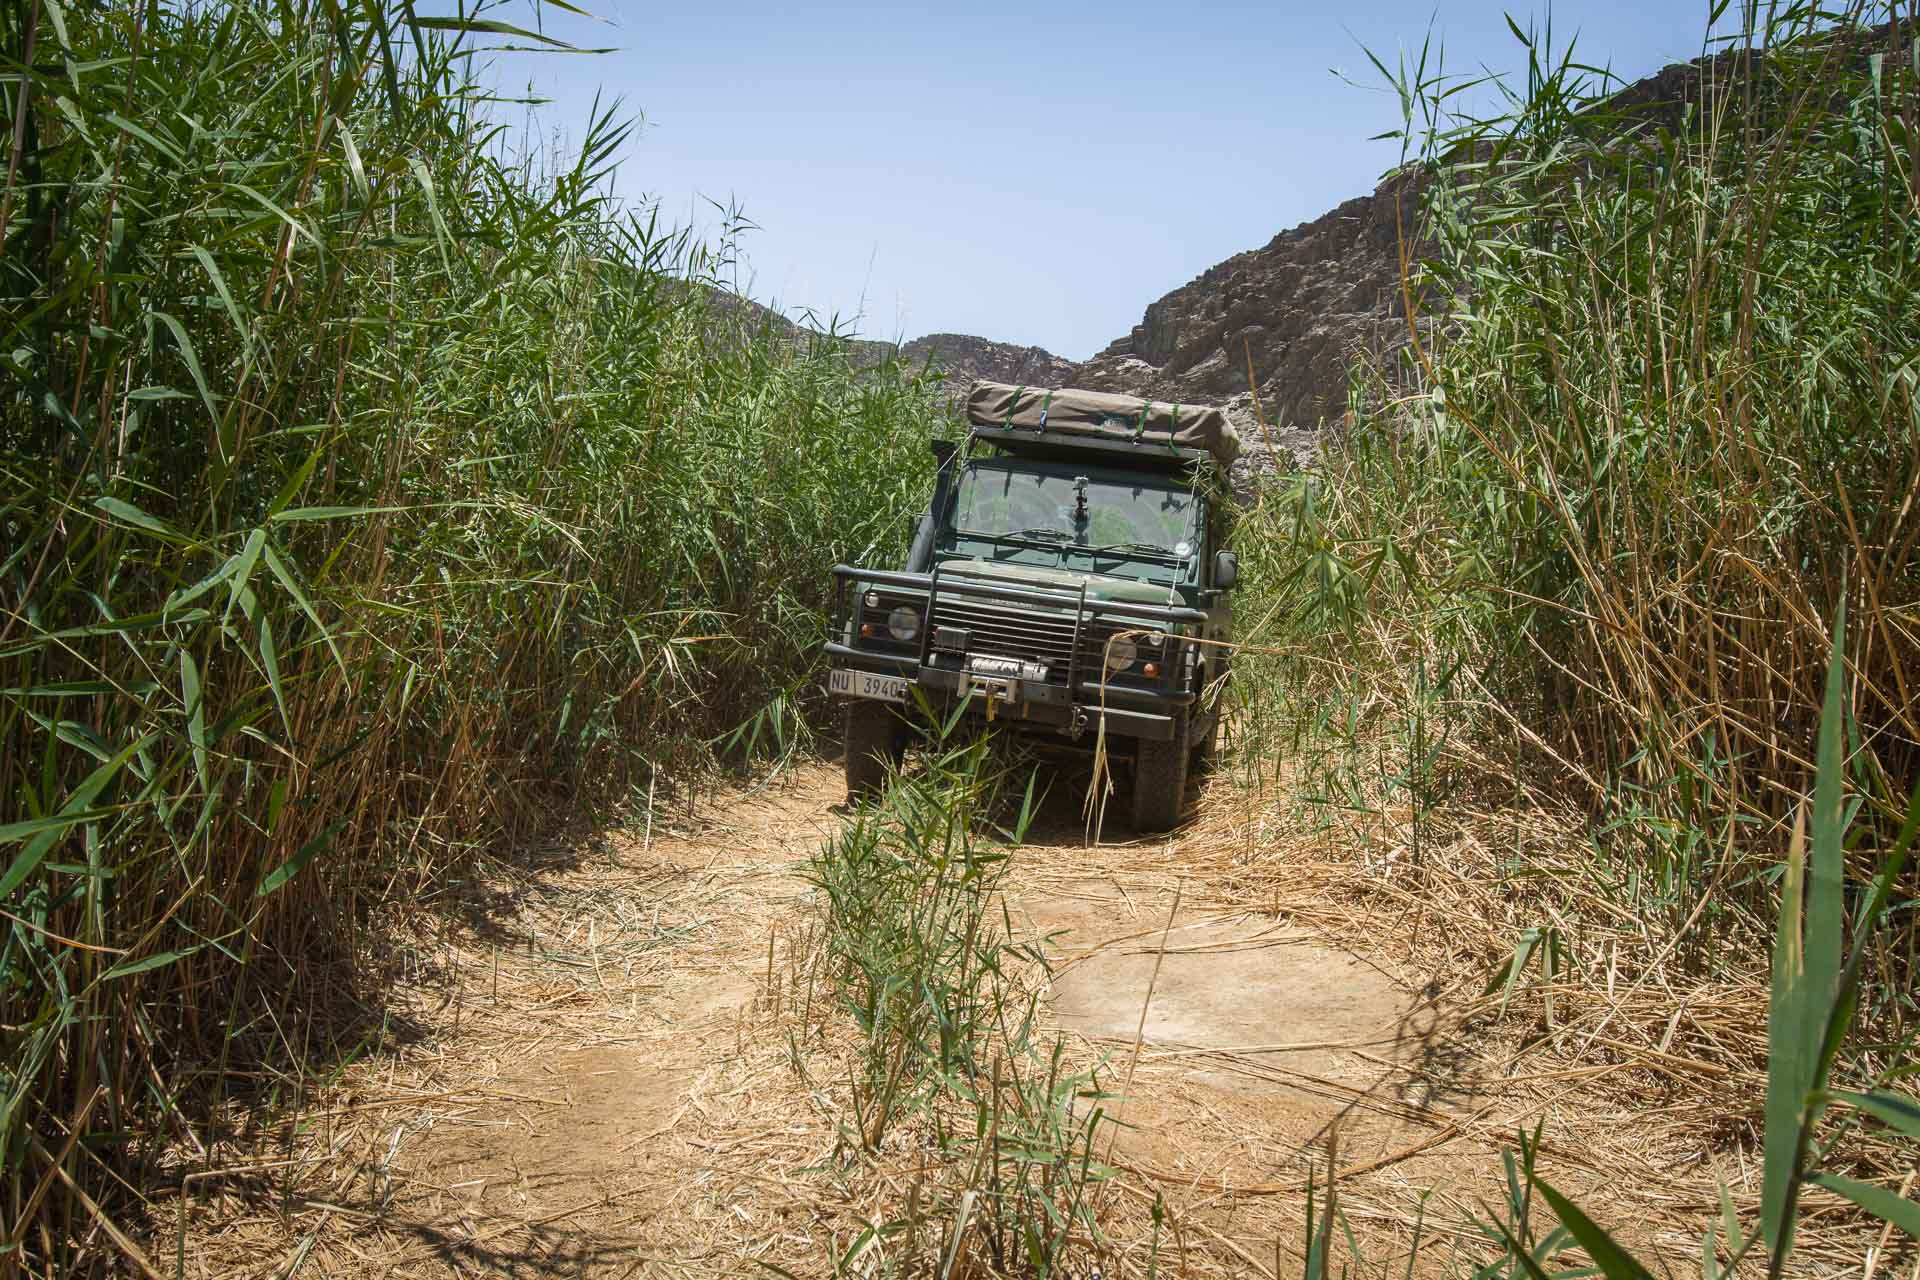 The Land Rover deep in the foliage of the Ugab River.